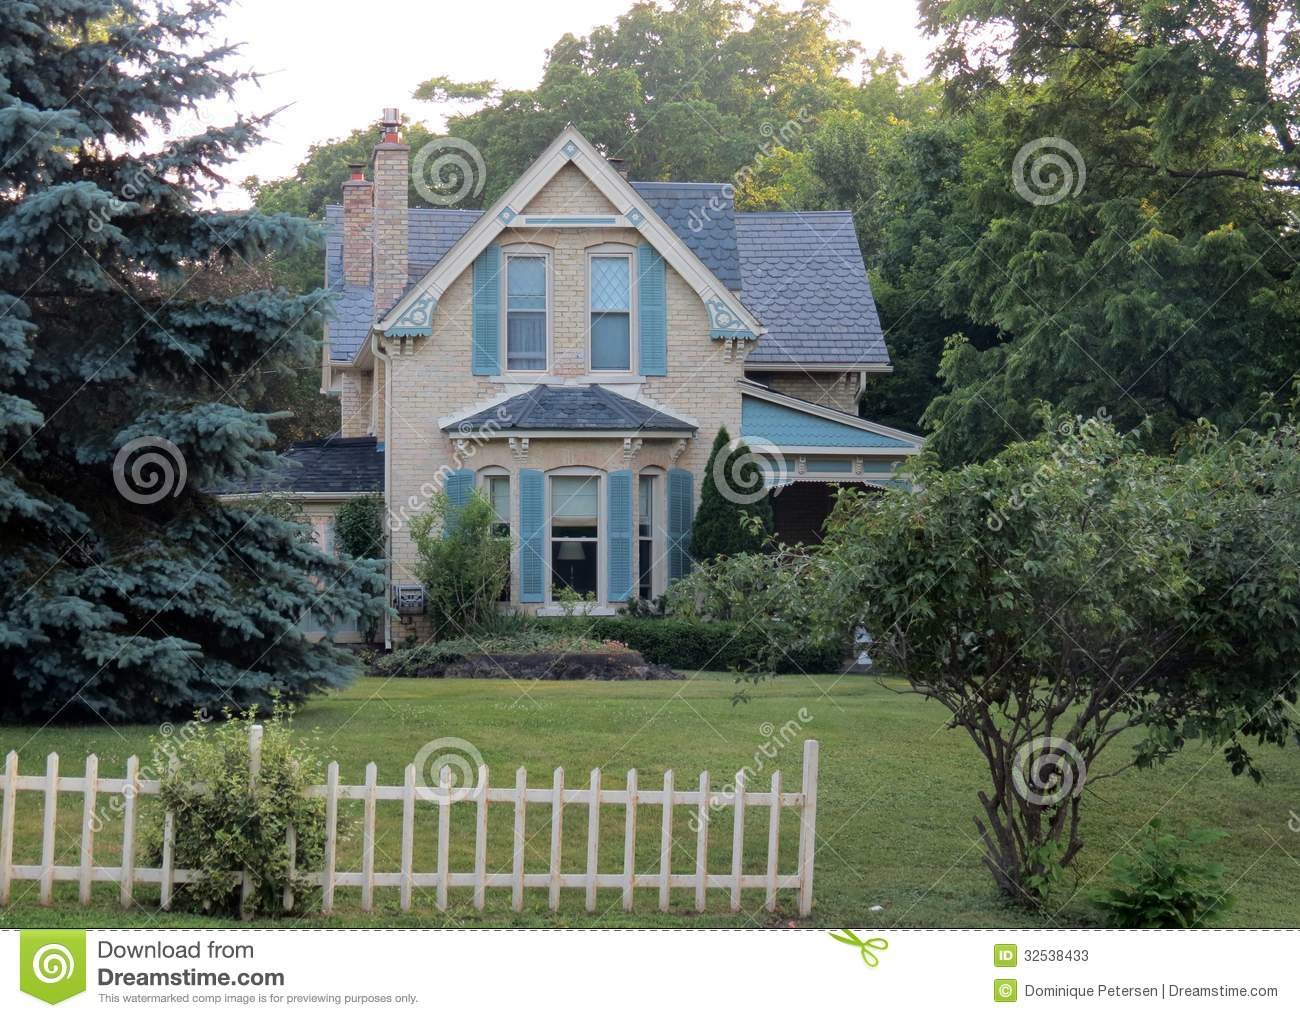 ... -story, Victorian-style home with large front yard and picket fence